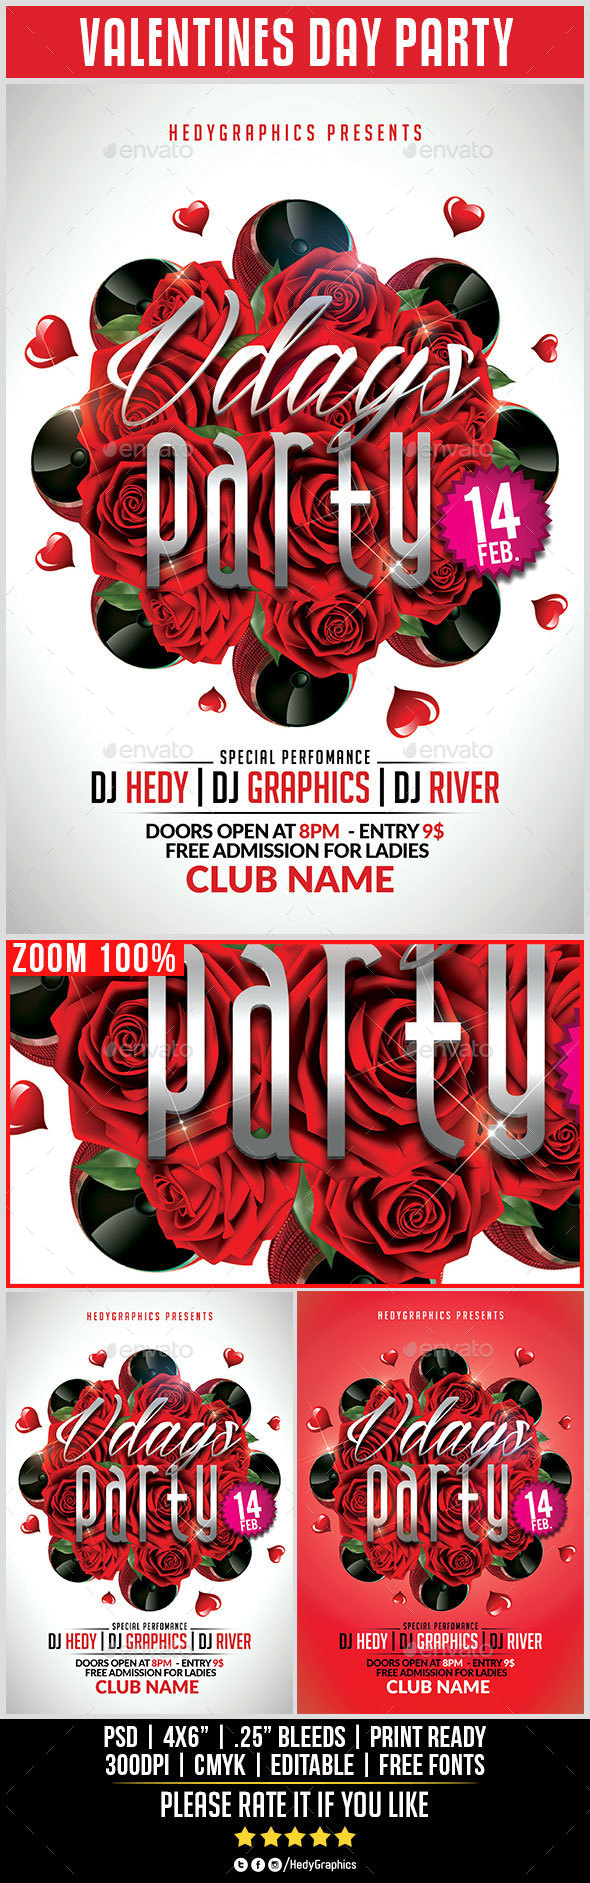 Valentines Day Party - Flyer Template - Clubs & Parties Events